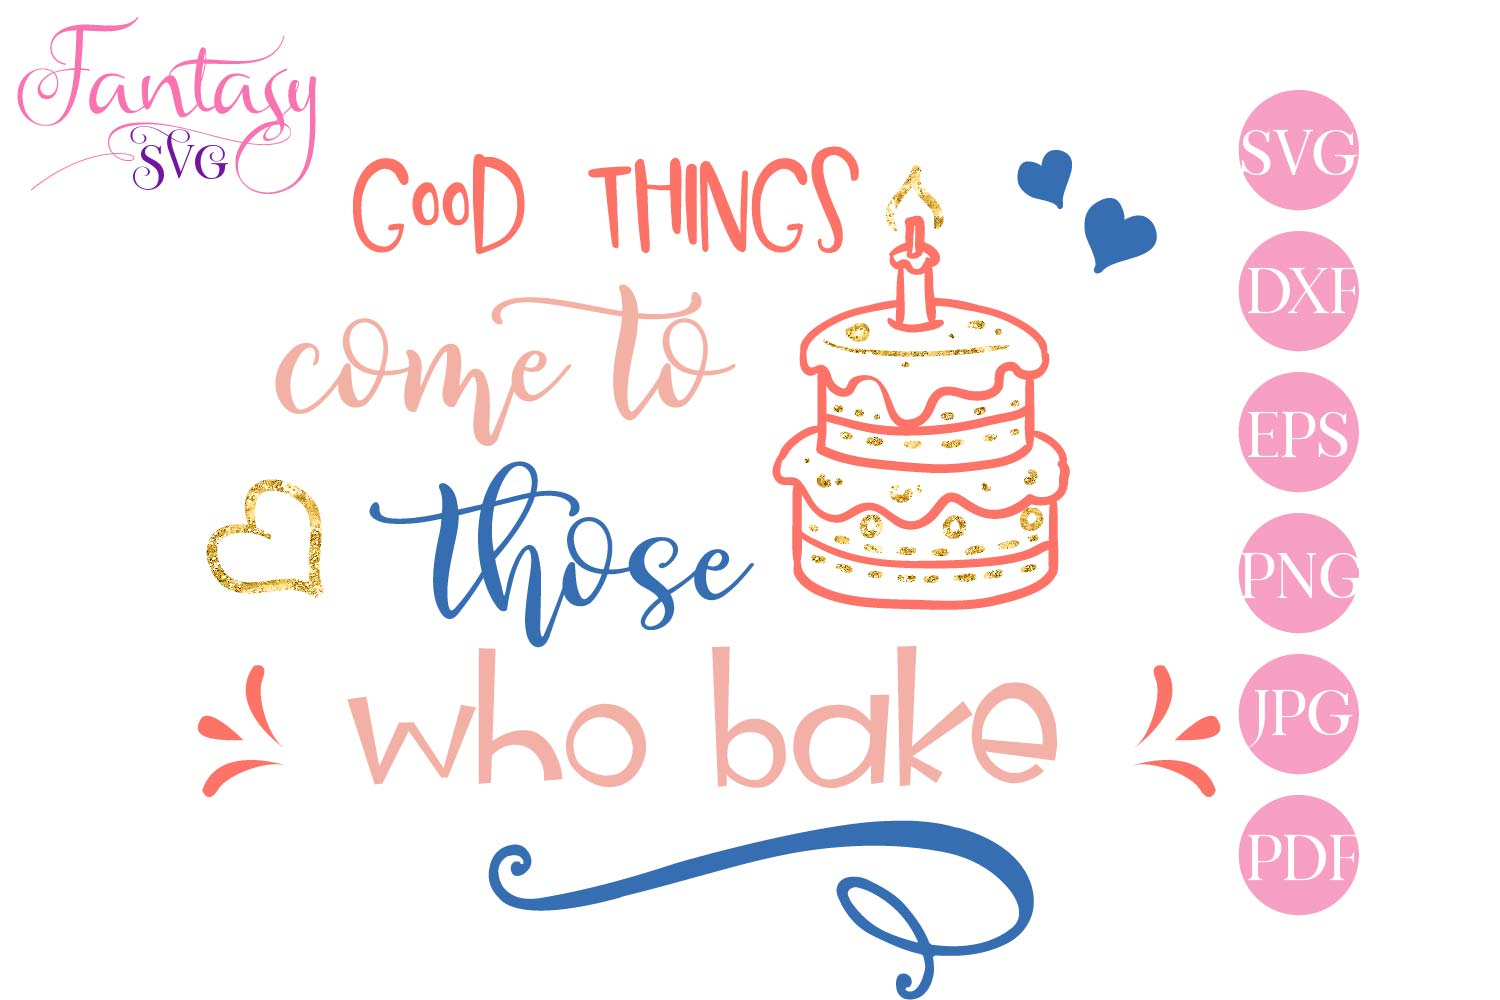 Good things come to those who bake - svg cut file example image 1